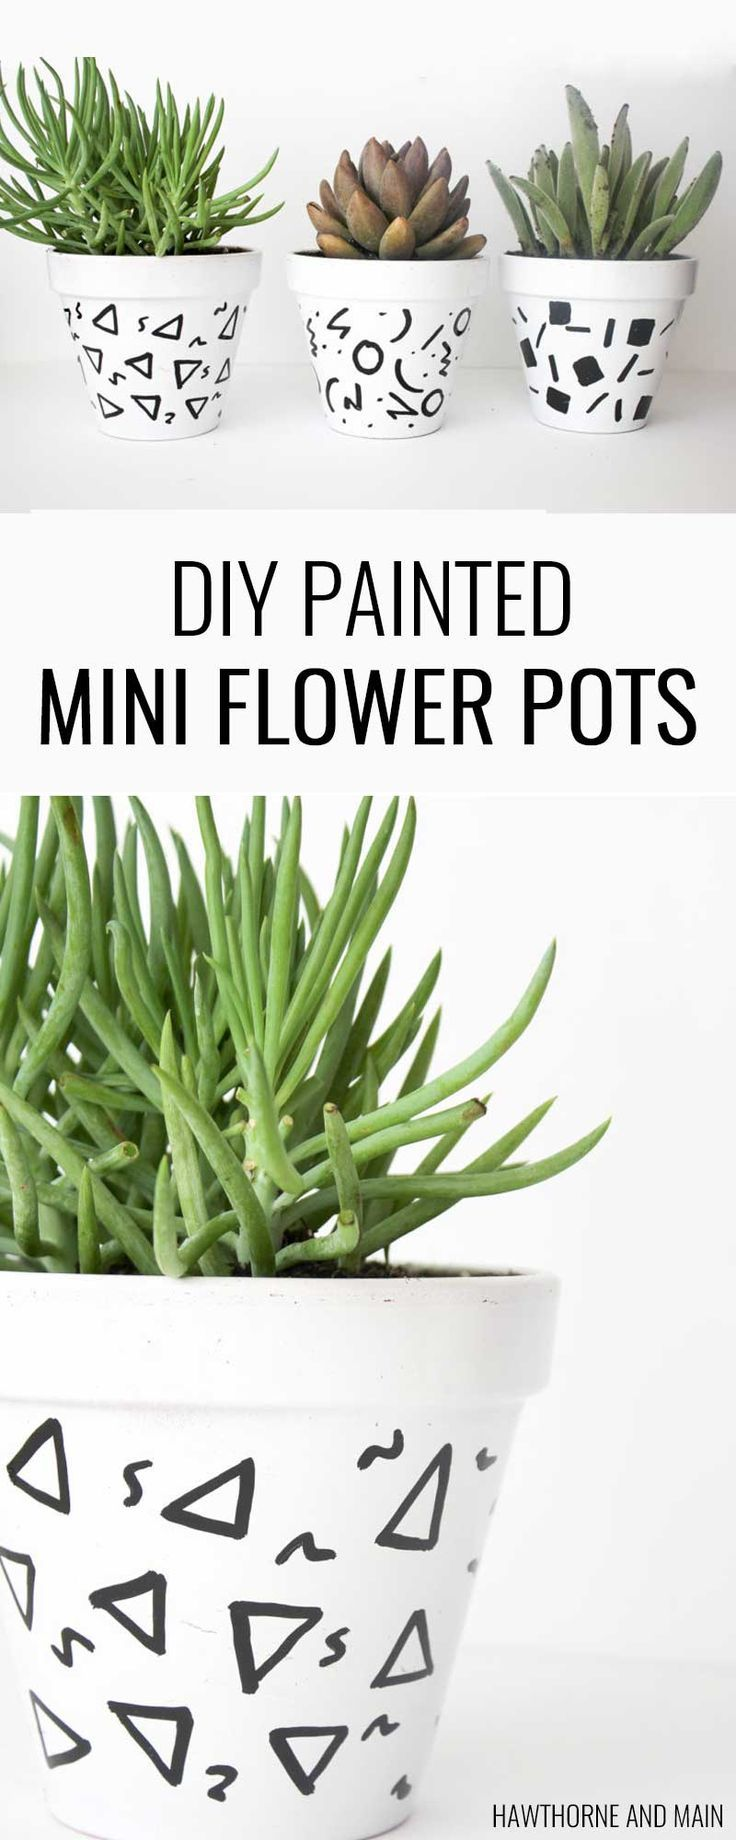 Diy make your own sand filled time out stool diy craft projects - Diy Mini Flower Pots Hawthorne And Main